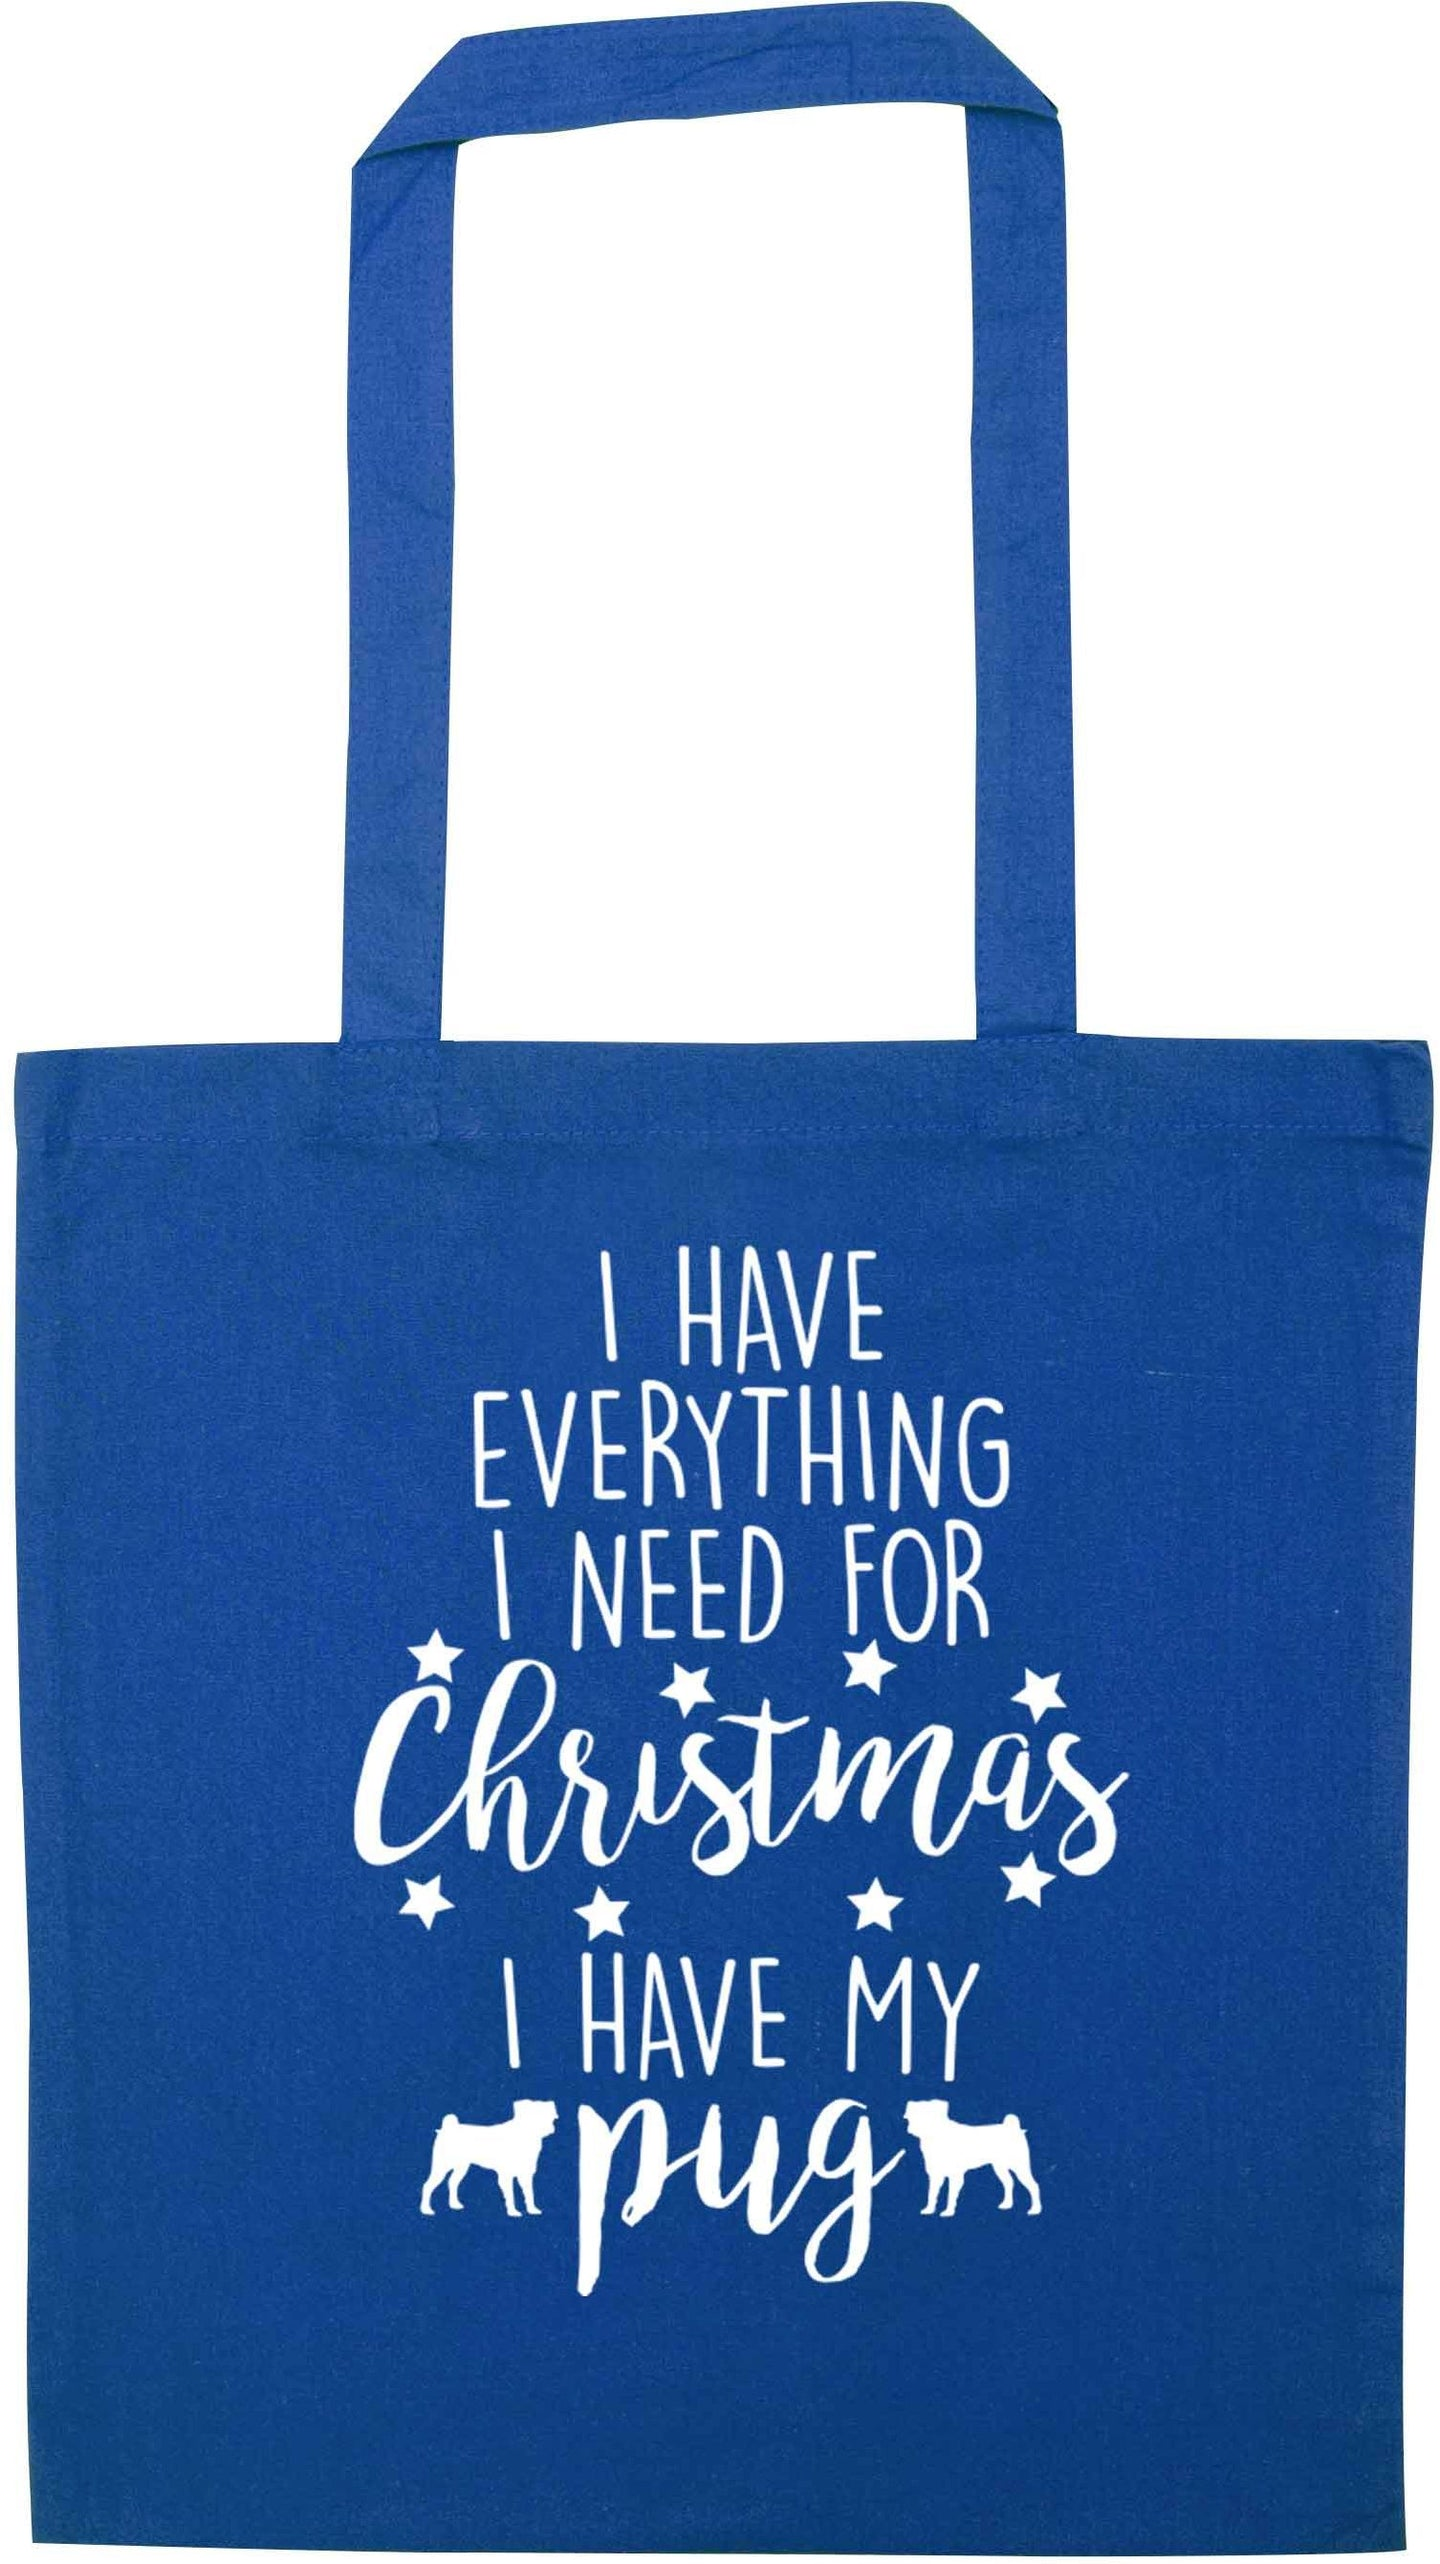 I have everything I need for Christmas I have my pug blue tote bag